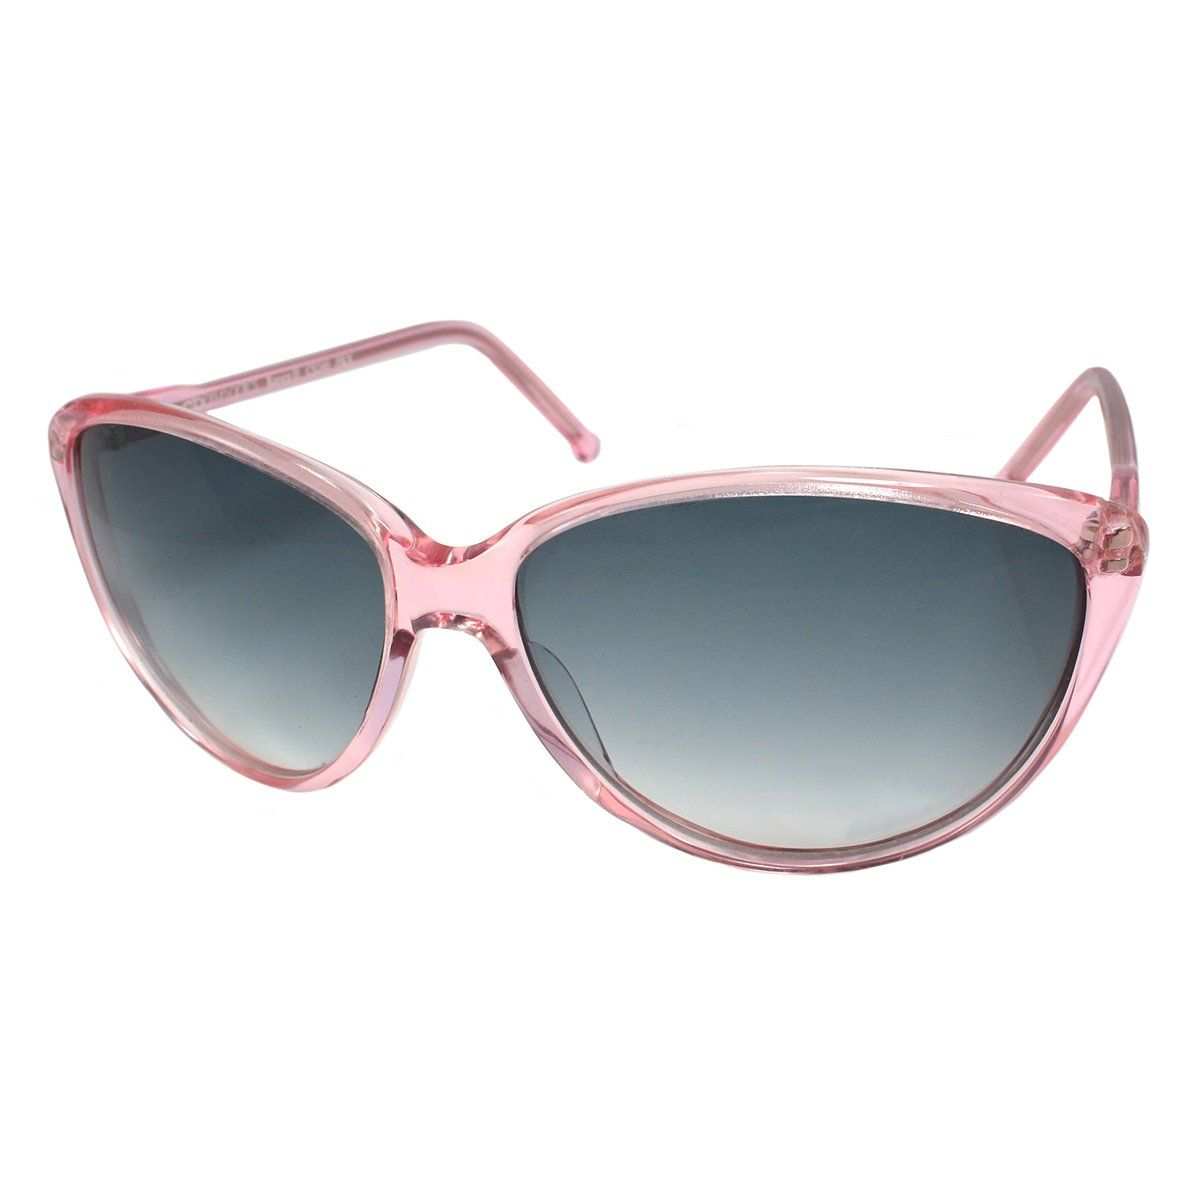 raven sunglasses  raven sunglasses